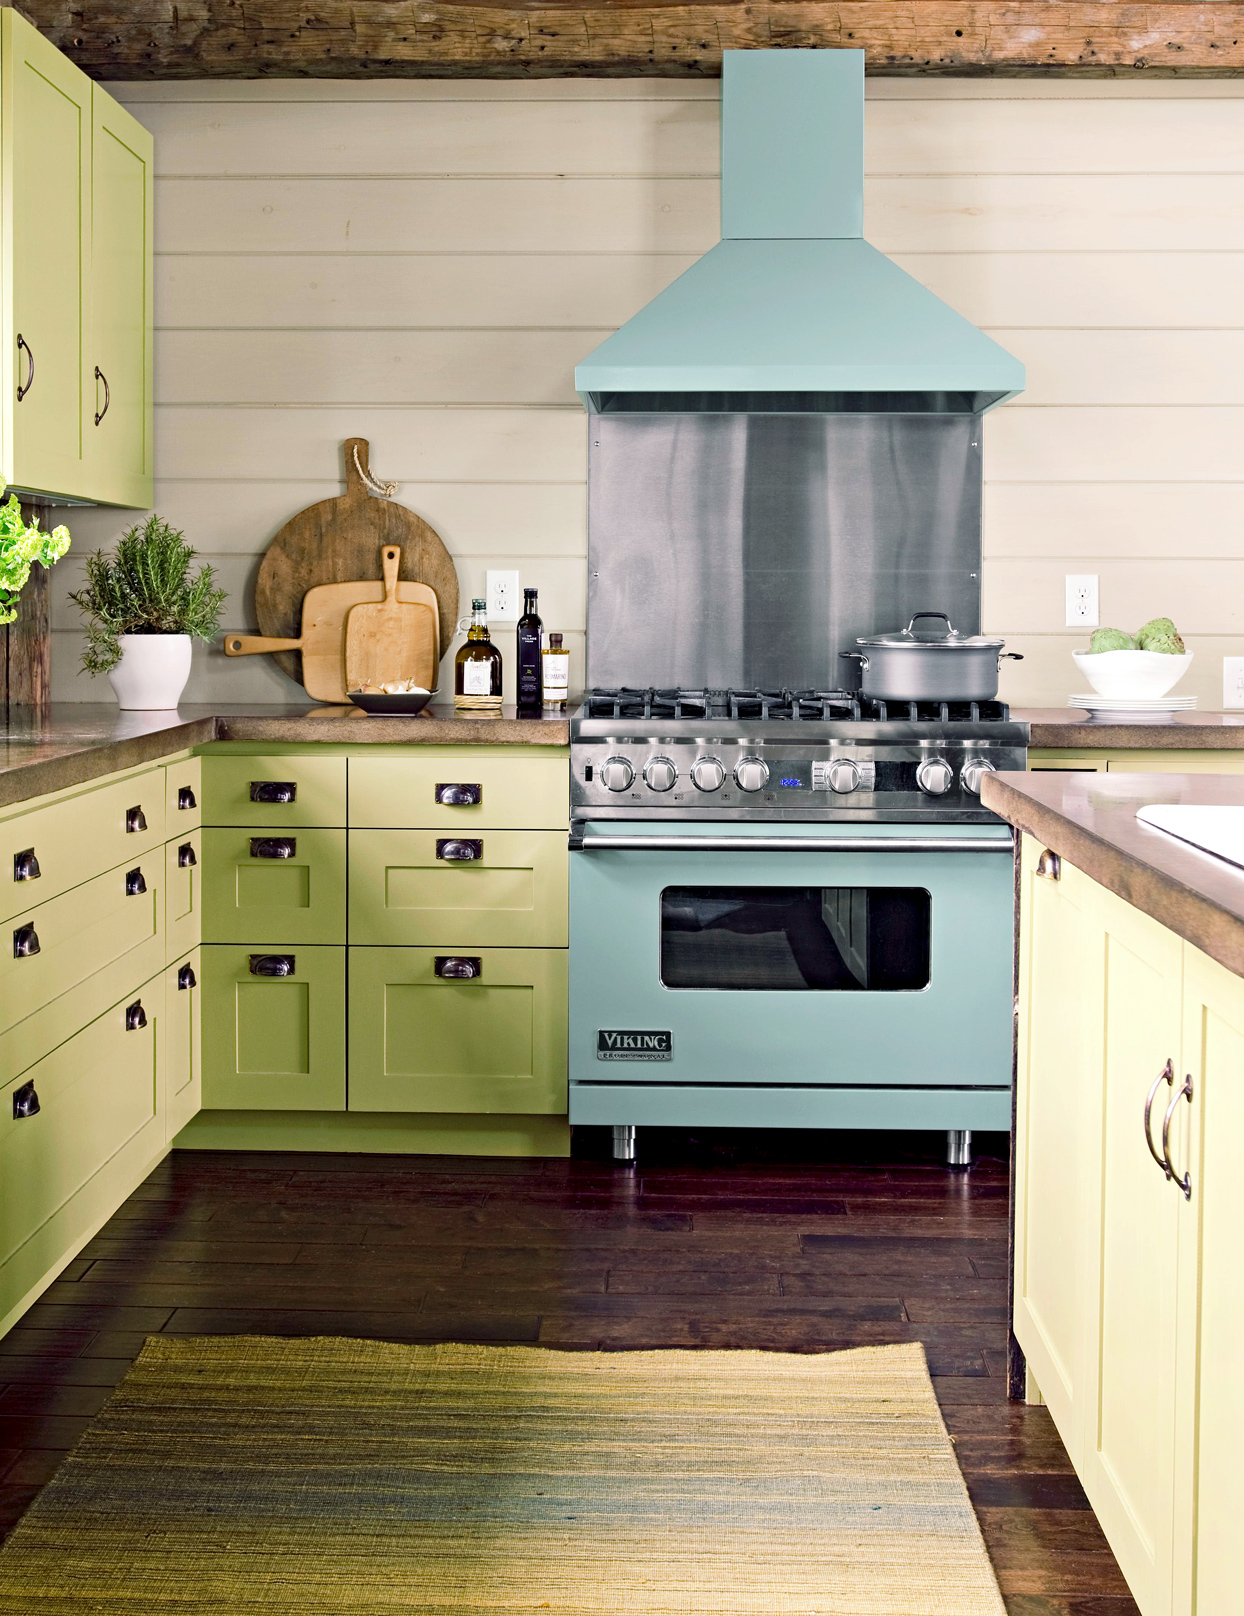 green kitchen with blue range and hood